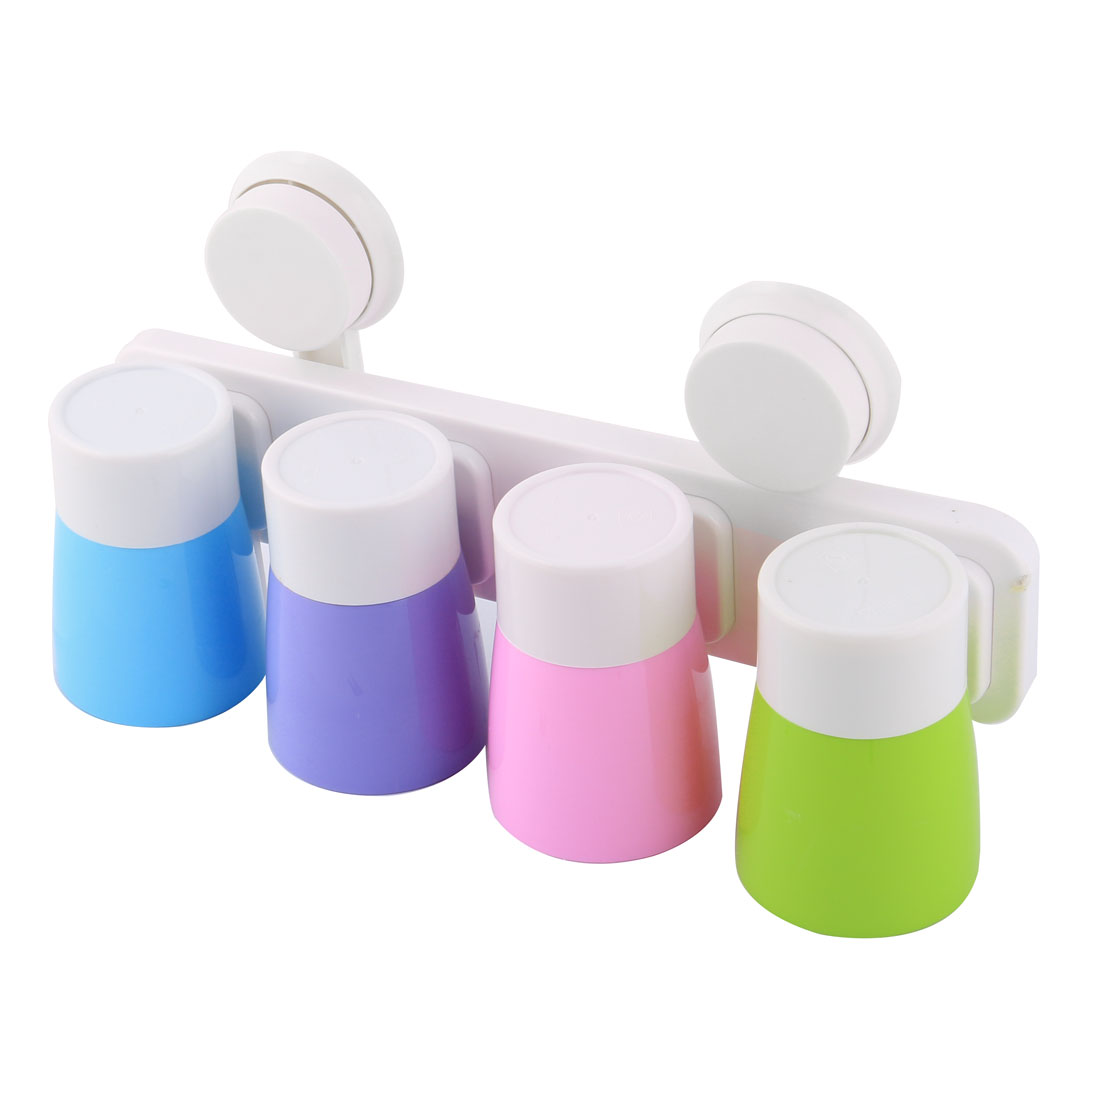 Bathroom Dual Suction Cups Toothpaste Organizer Toothbrush Storage Holder Set